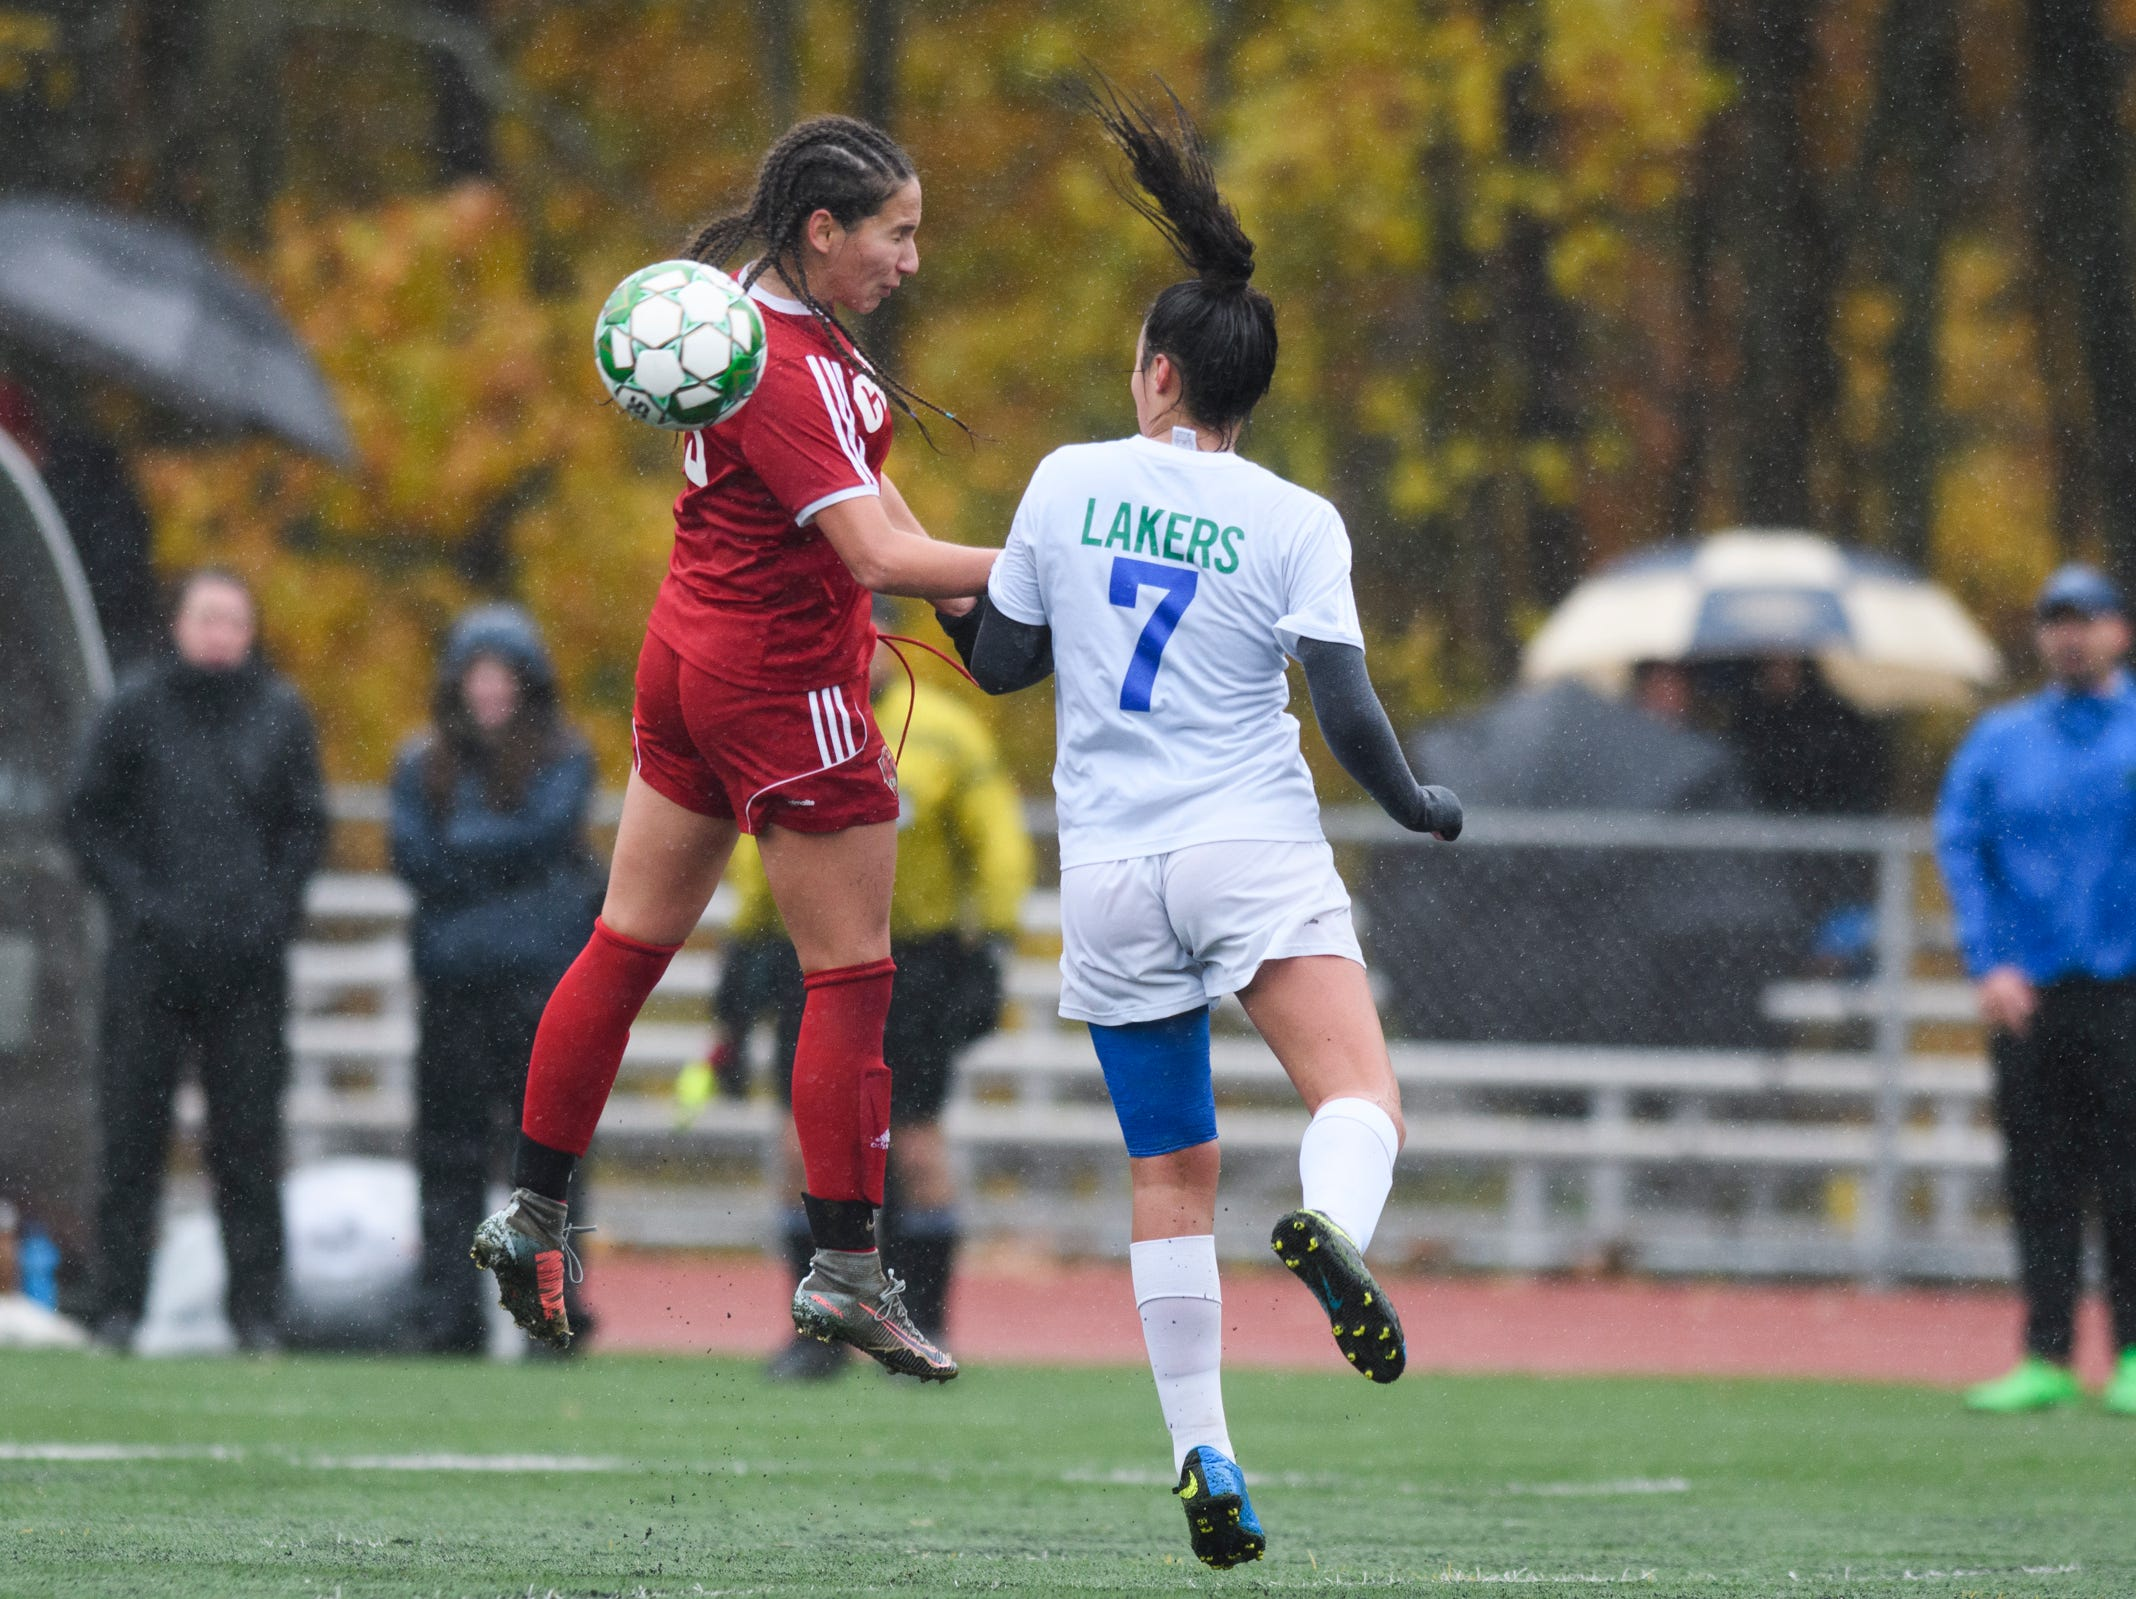 CVU's Sara Kelley (19) leaps over Colchester's Hailey Desautels (7) to head the ball during the division I girls soccer championship game between the Colchester Lakers and the Champlain Valley Union Redhawks at Buck Hard Field on Saturday morning November 3, 2018 in Burlington.